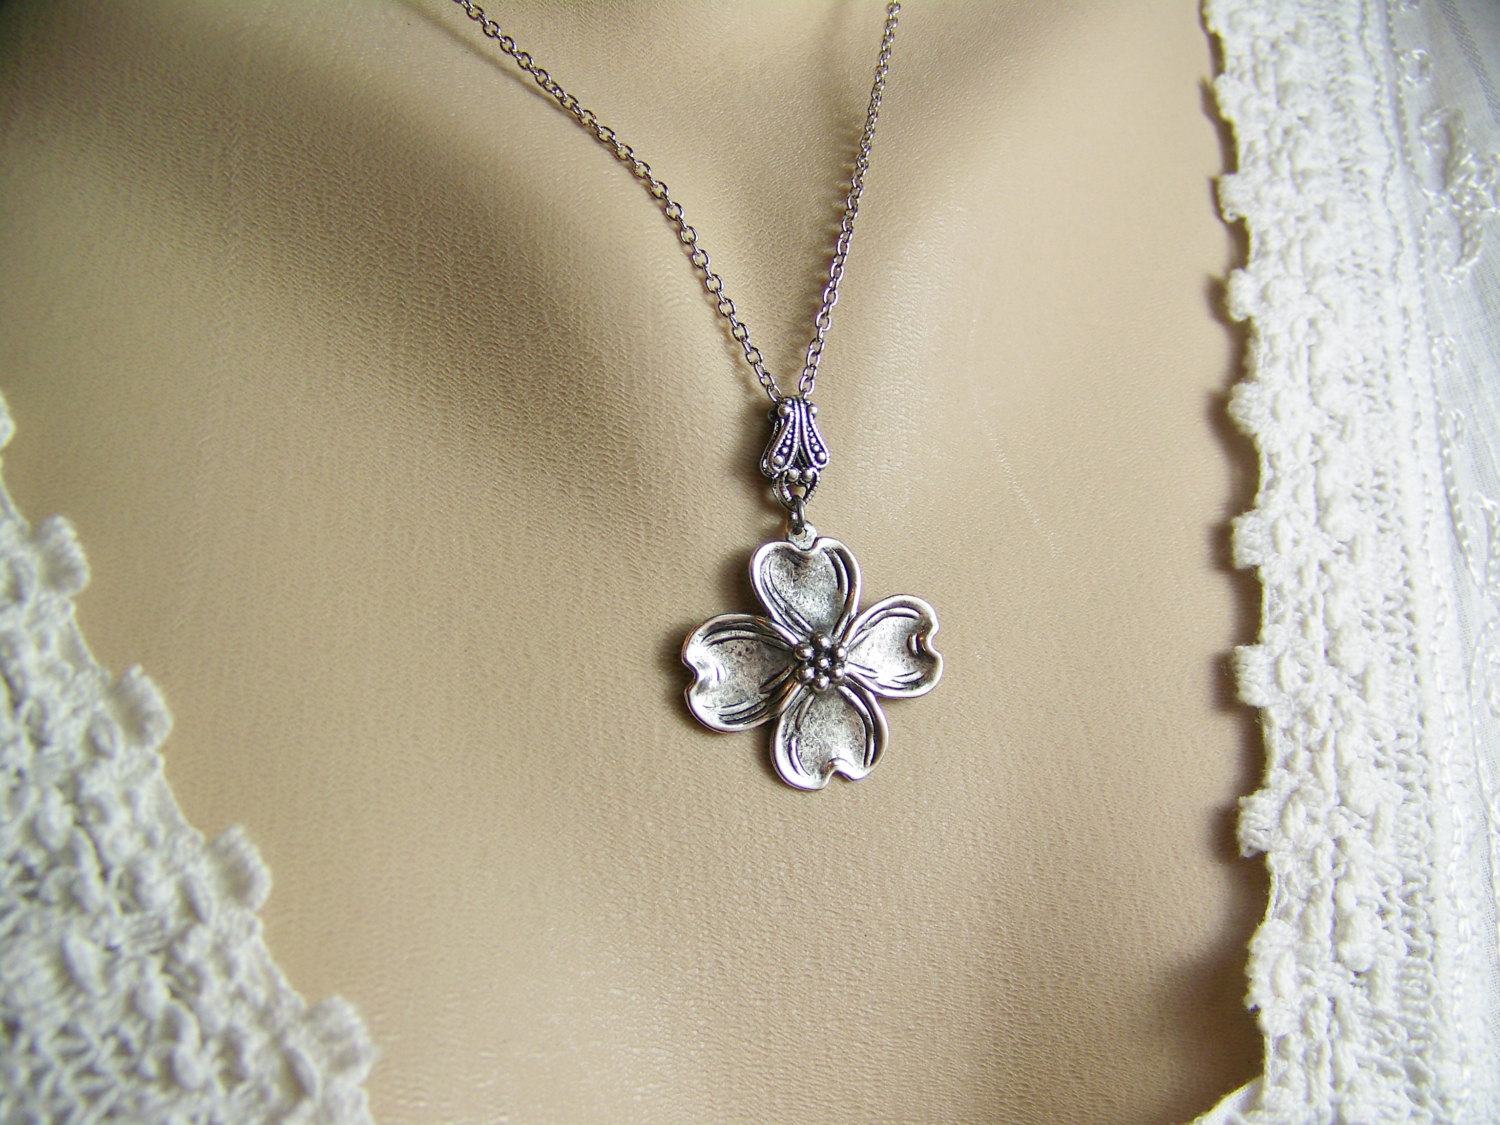 Dogwood Necklace, Dogwood Flower, Silver Dogwood, Flower Petal Necklace, Four Petal Flower Necklace, Spring Necklace, Dogwood Intended For Latest Four Petal Flower Necklaces (View 9 of 25)